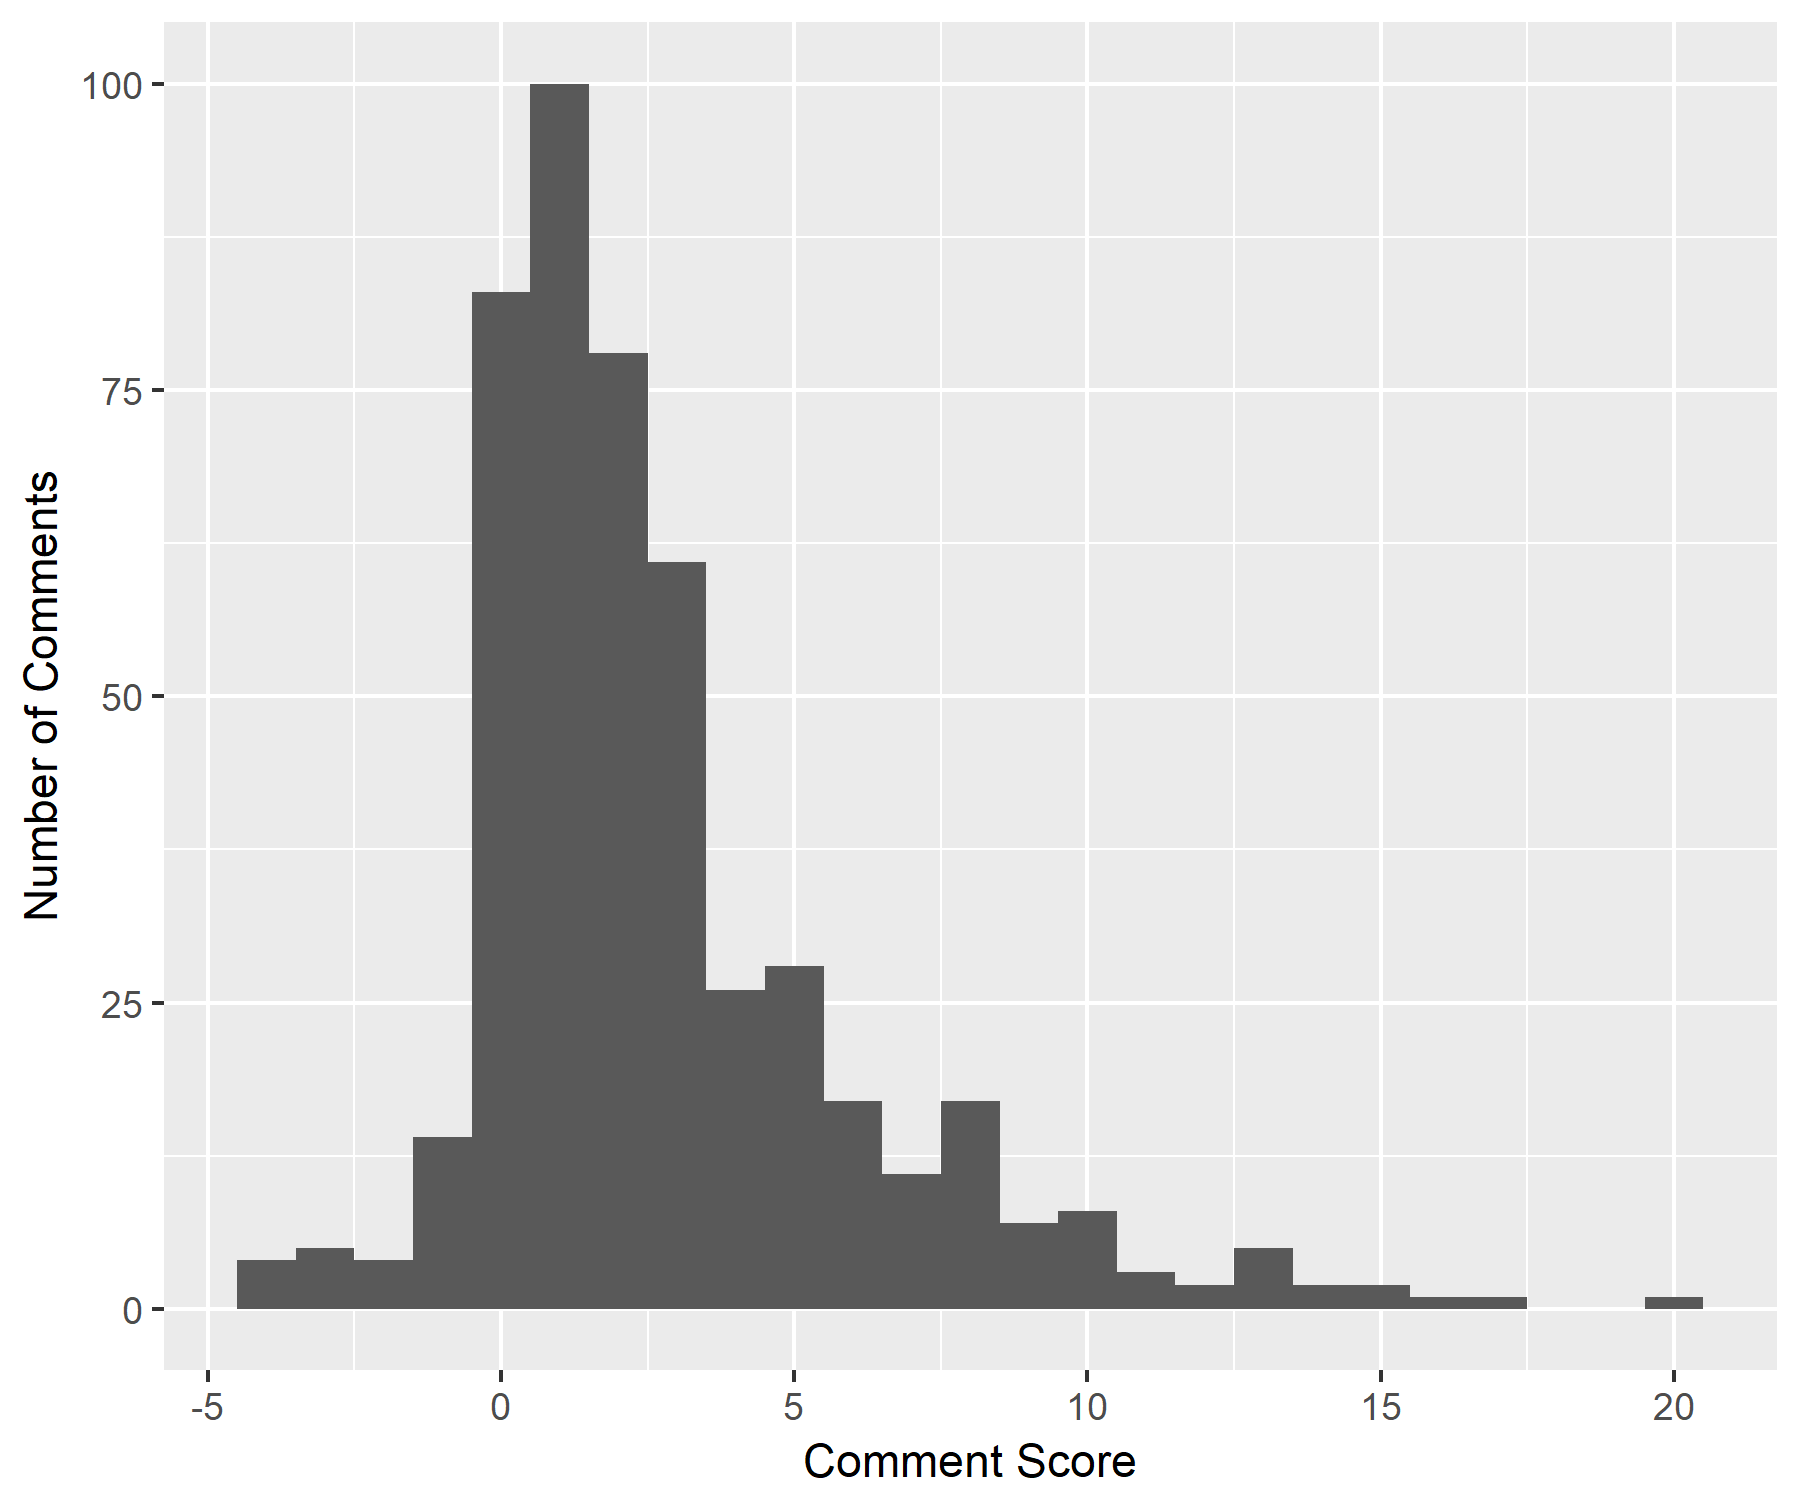 Histogram showing score per comment